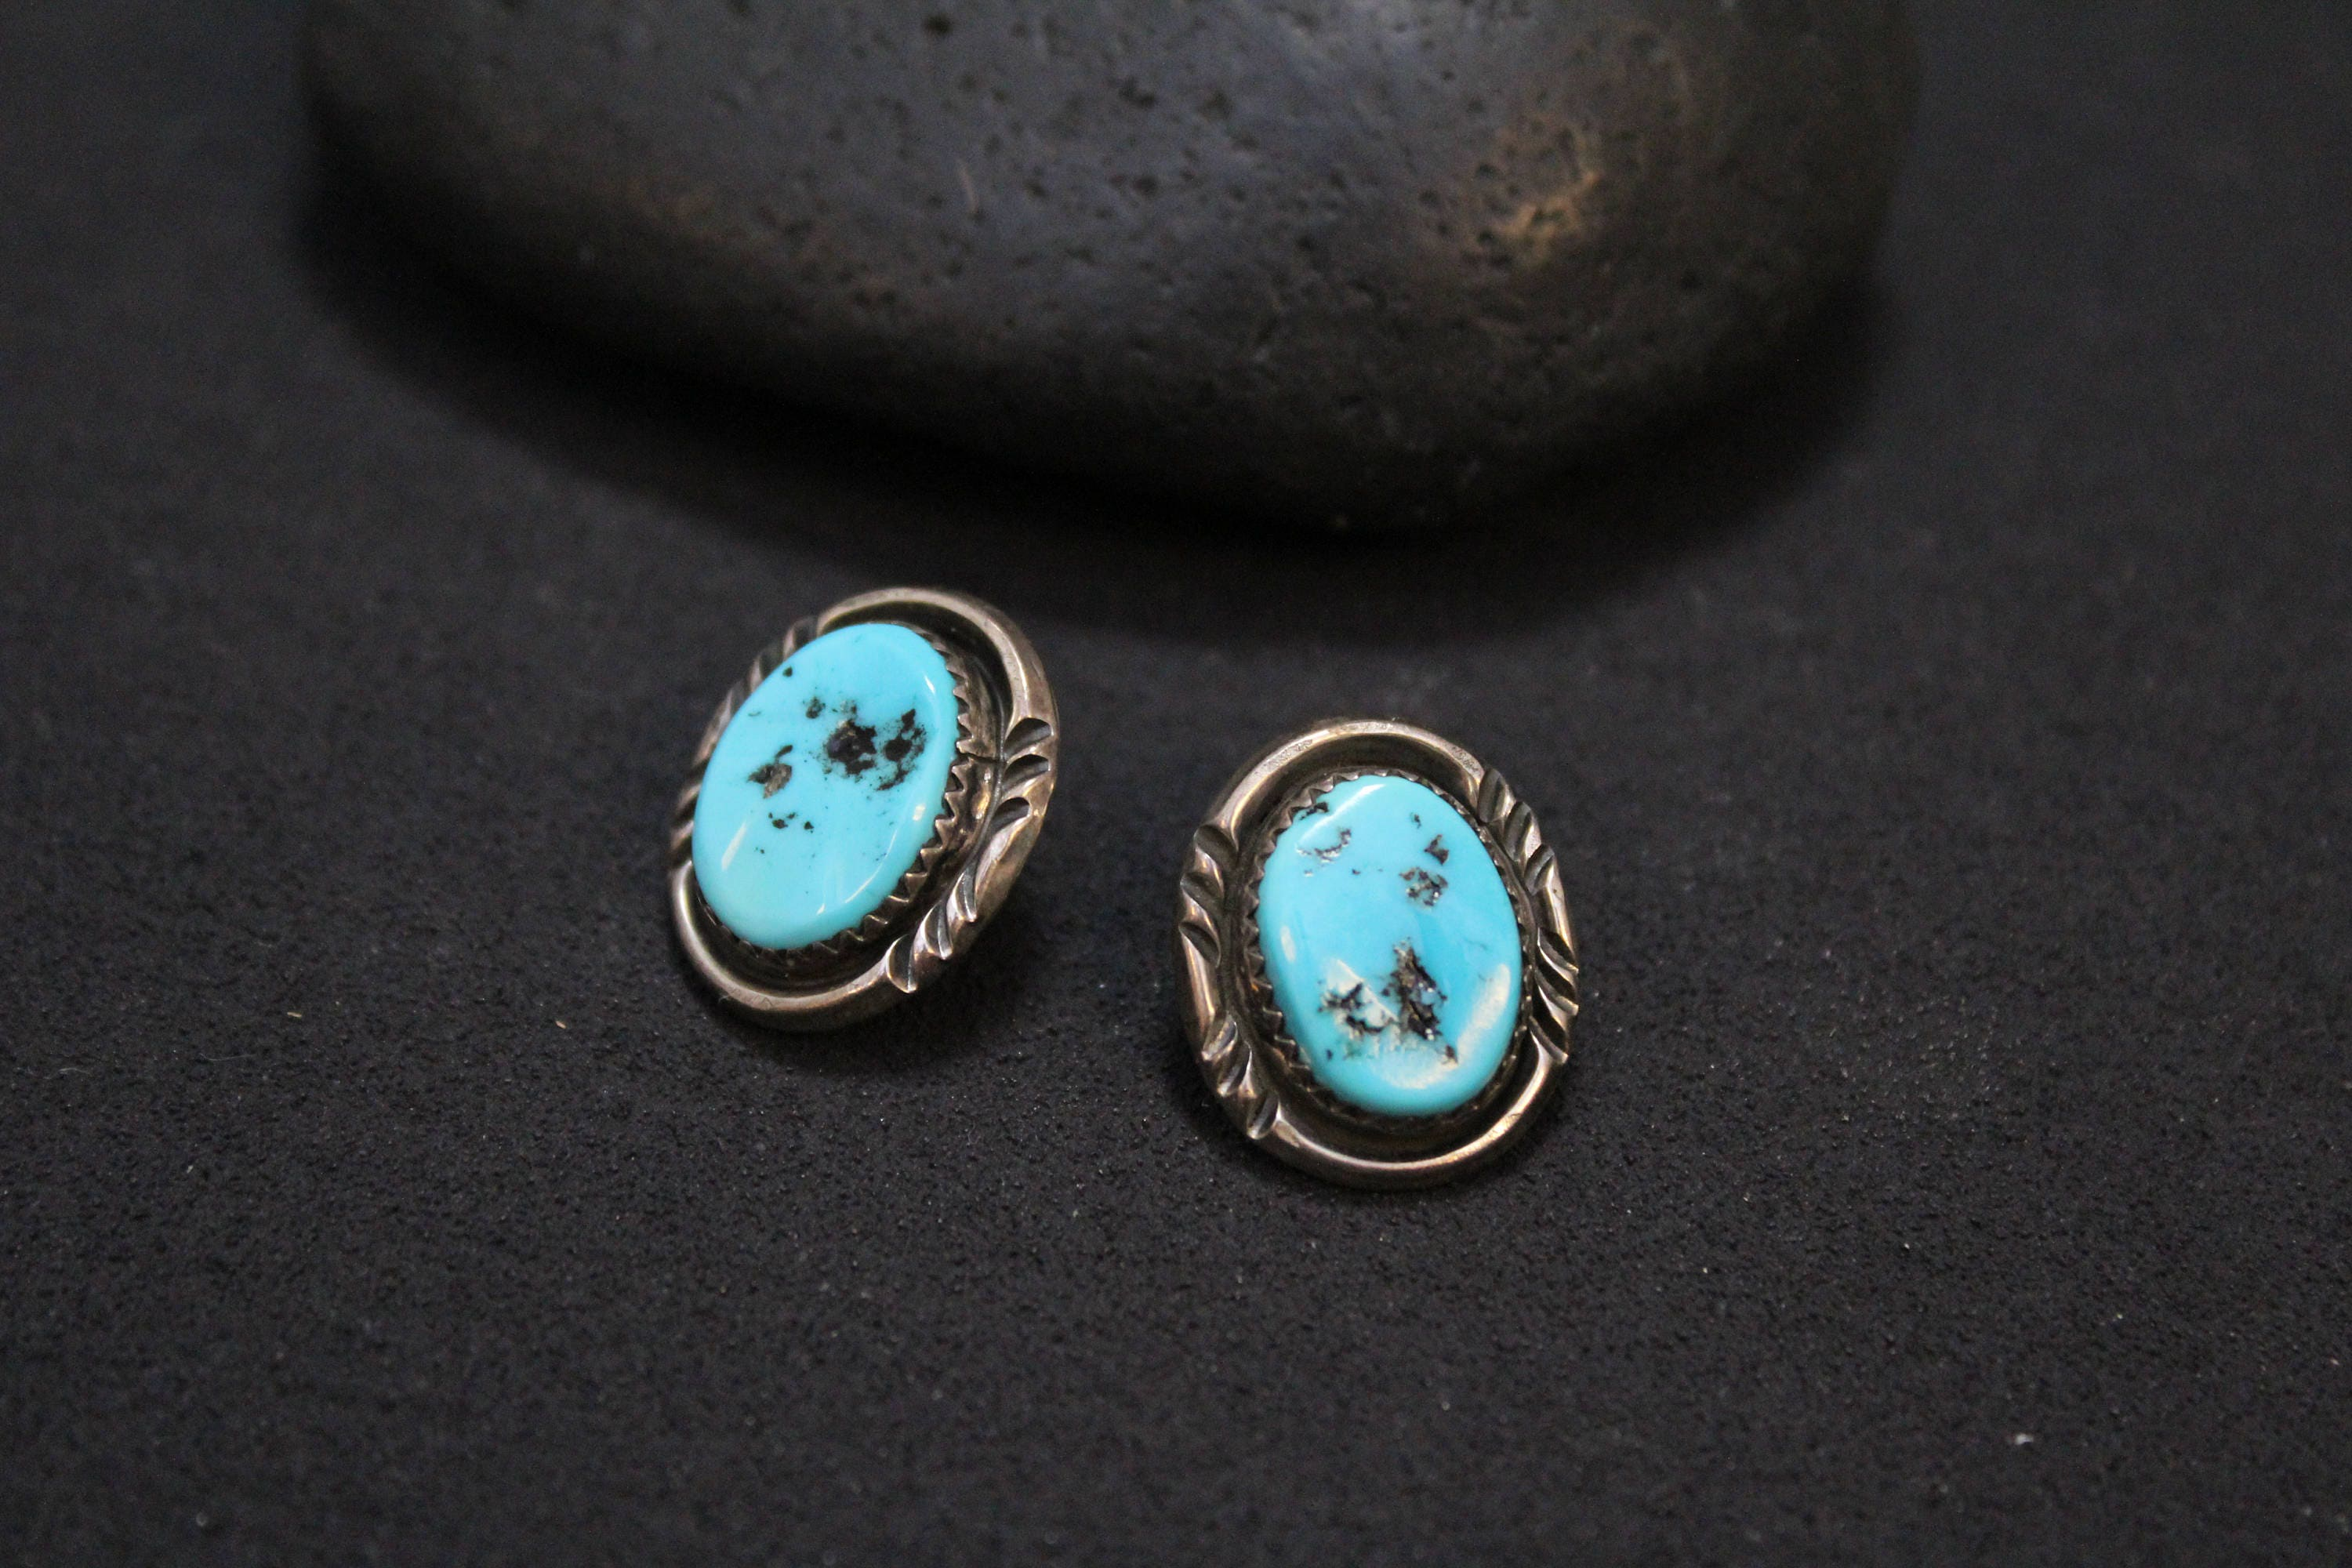 design justine dsc opal stud brooks earrings druzy turquoise products